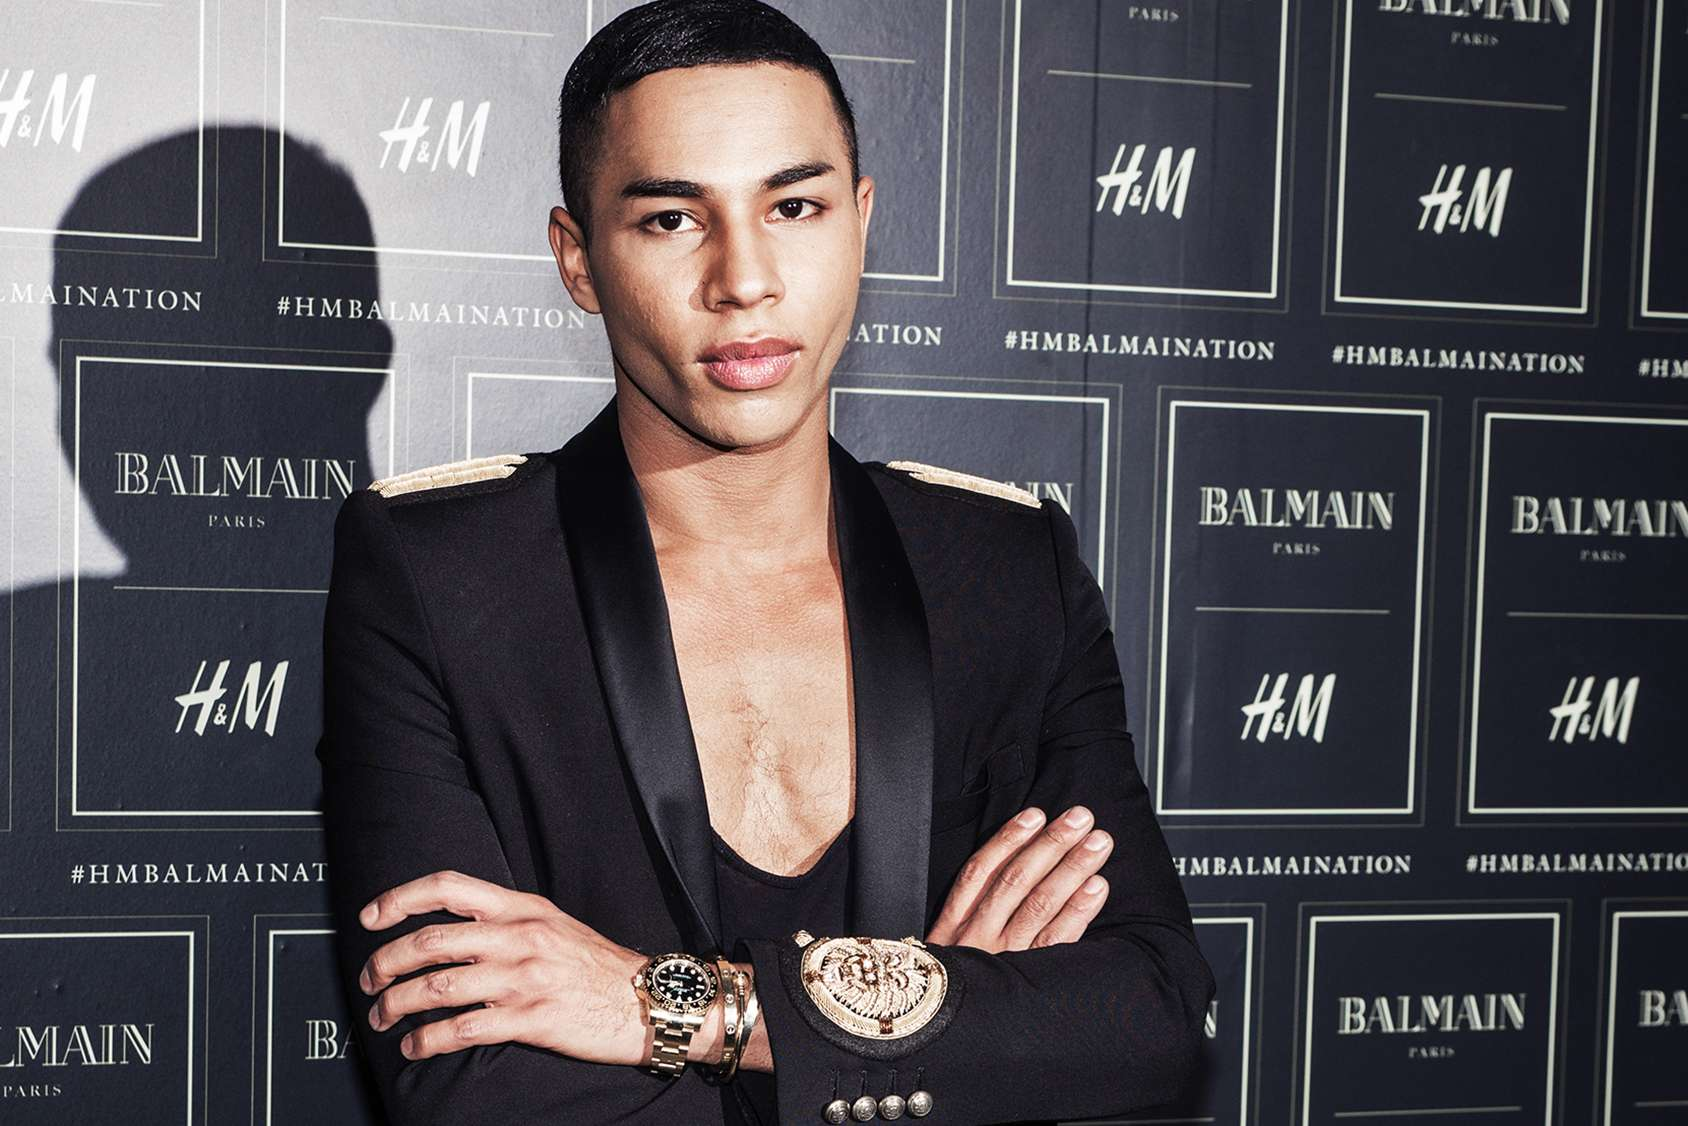 93759a0730b My Interview with Olivier Rousteing creative director of Balmain ...